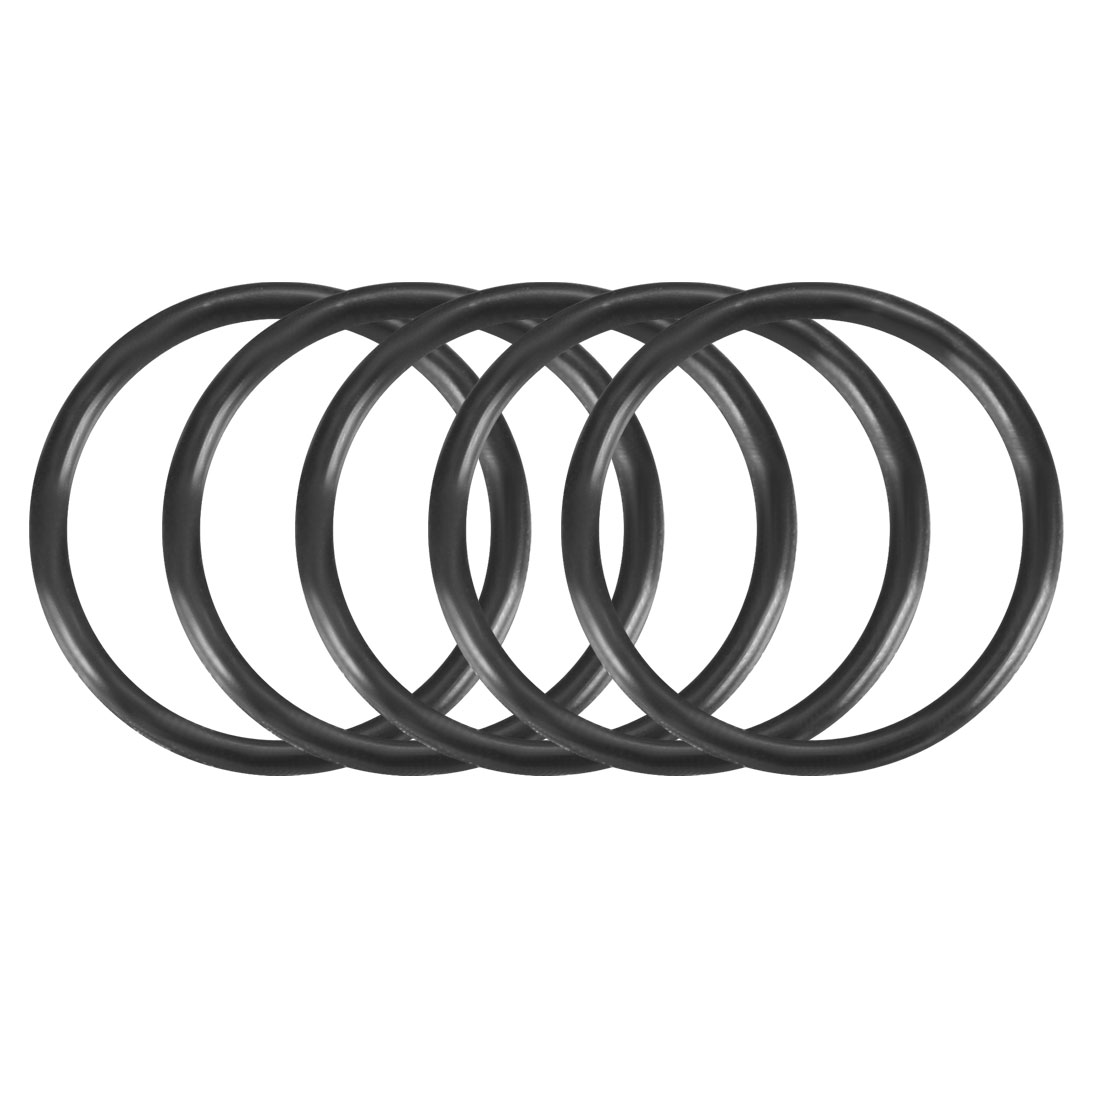 50Pcs 15x1.2mm Nitrile Rubber O-rings Heat Resistant Sealing Ring Grommets Black